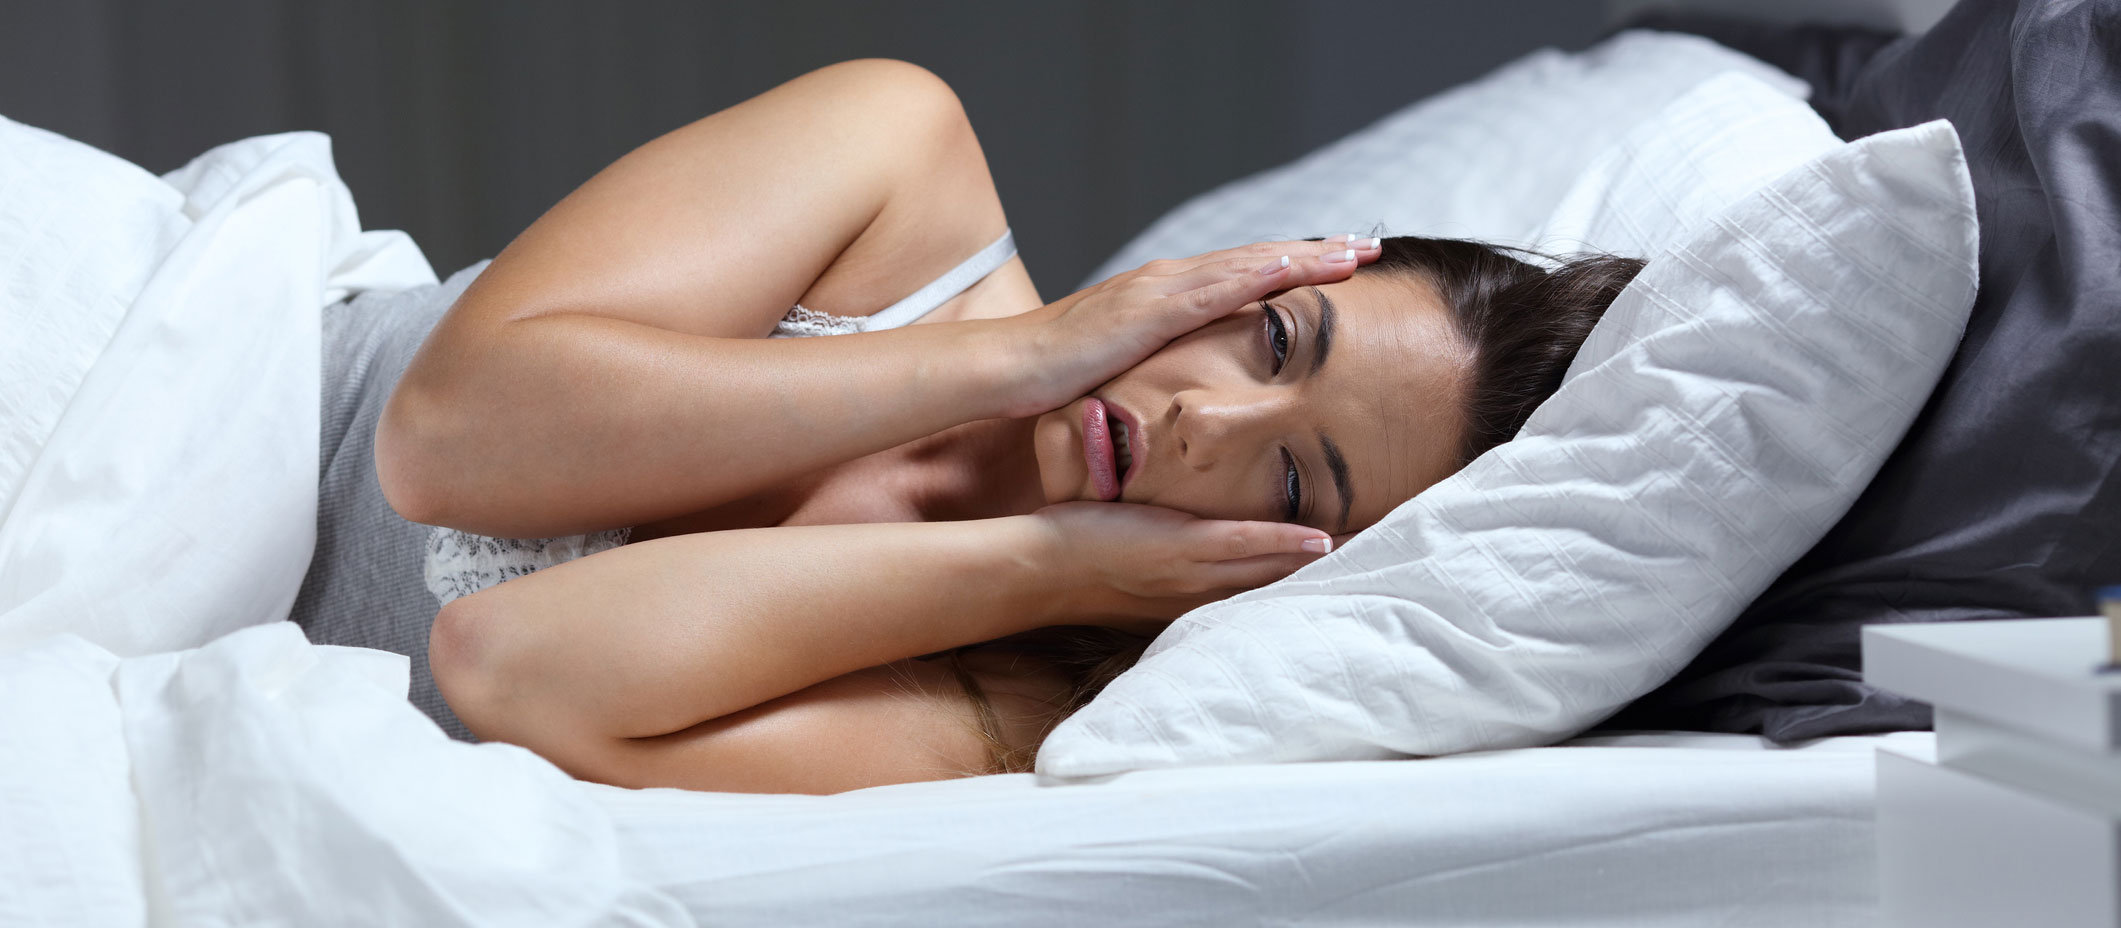 Feeling Inflamed? Maybe it's Sleep deprivation